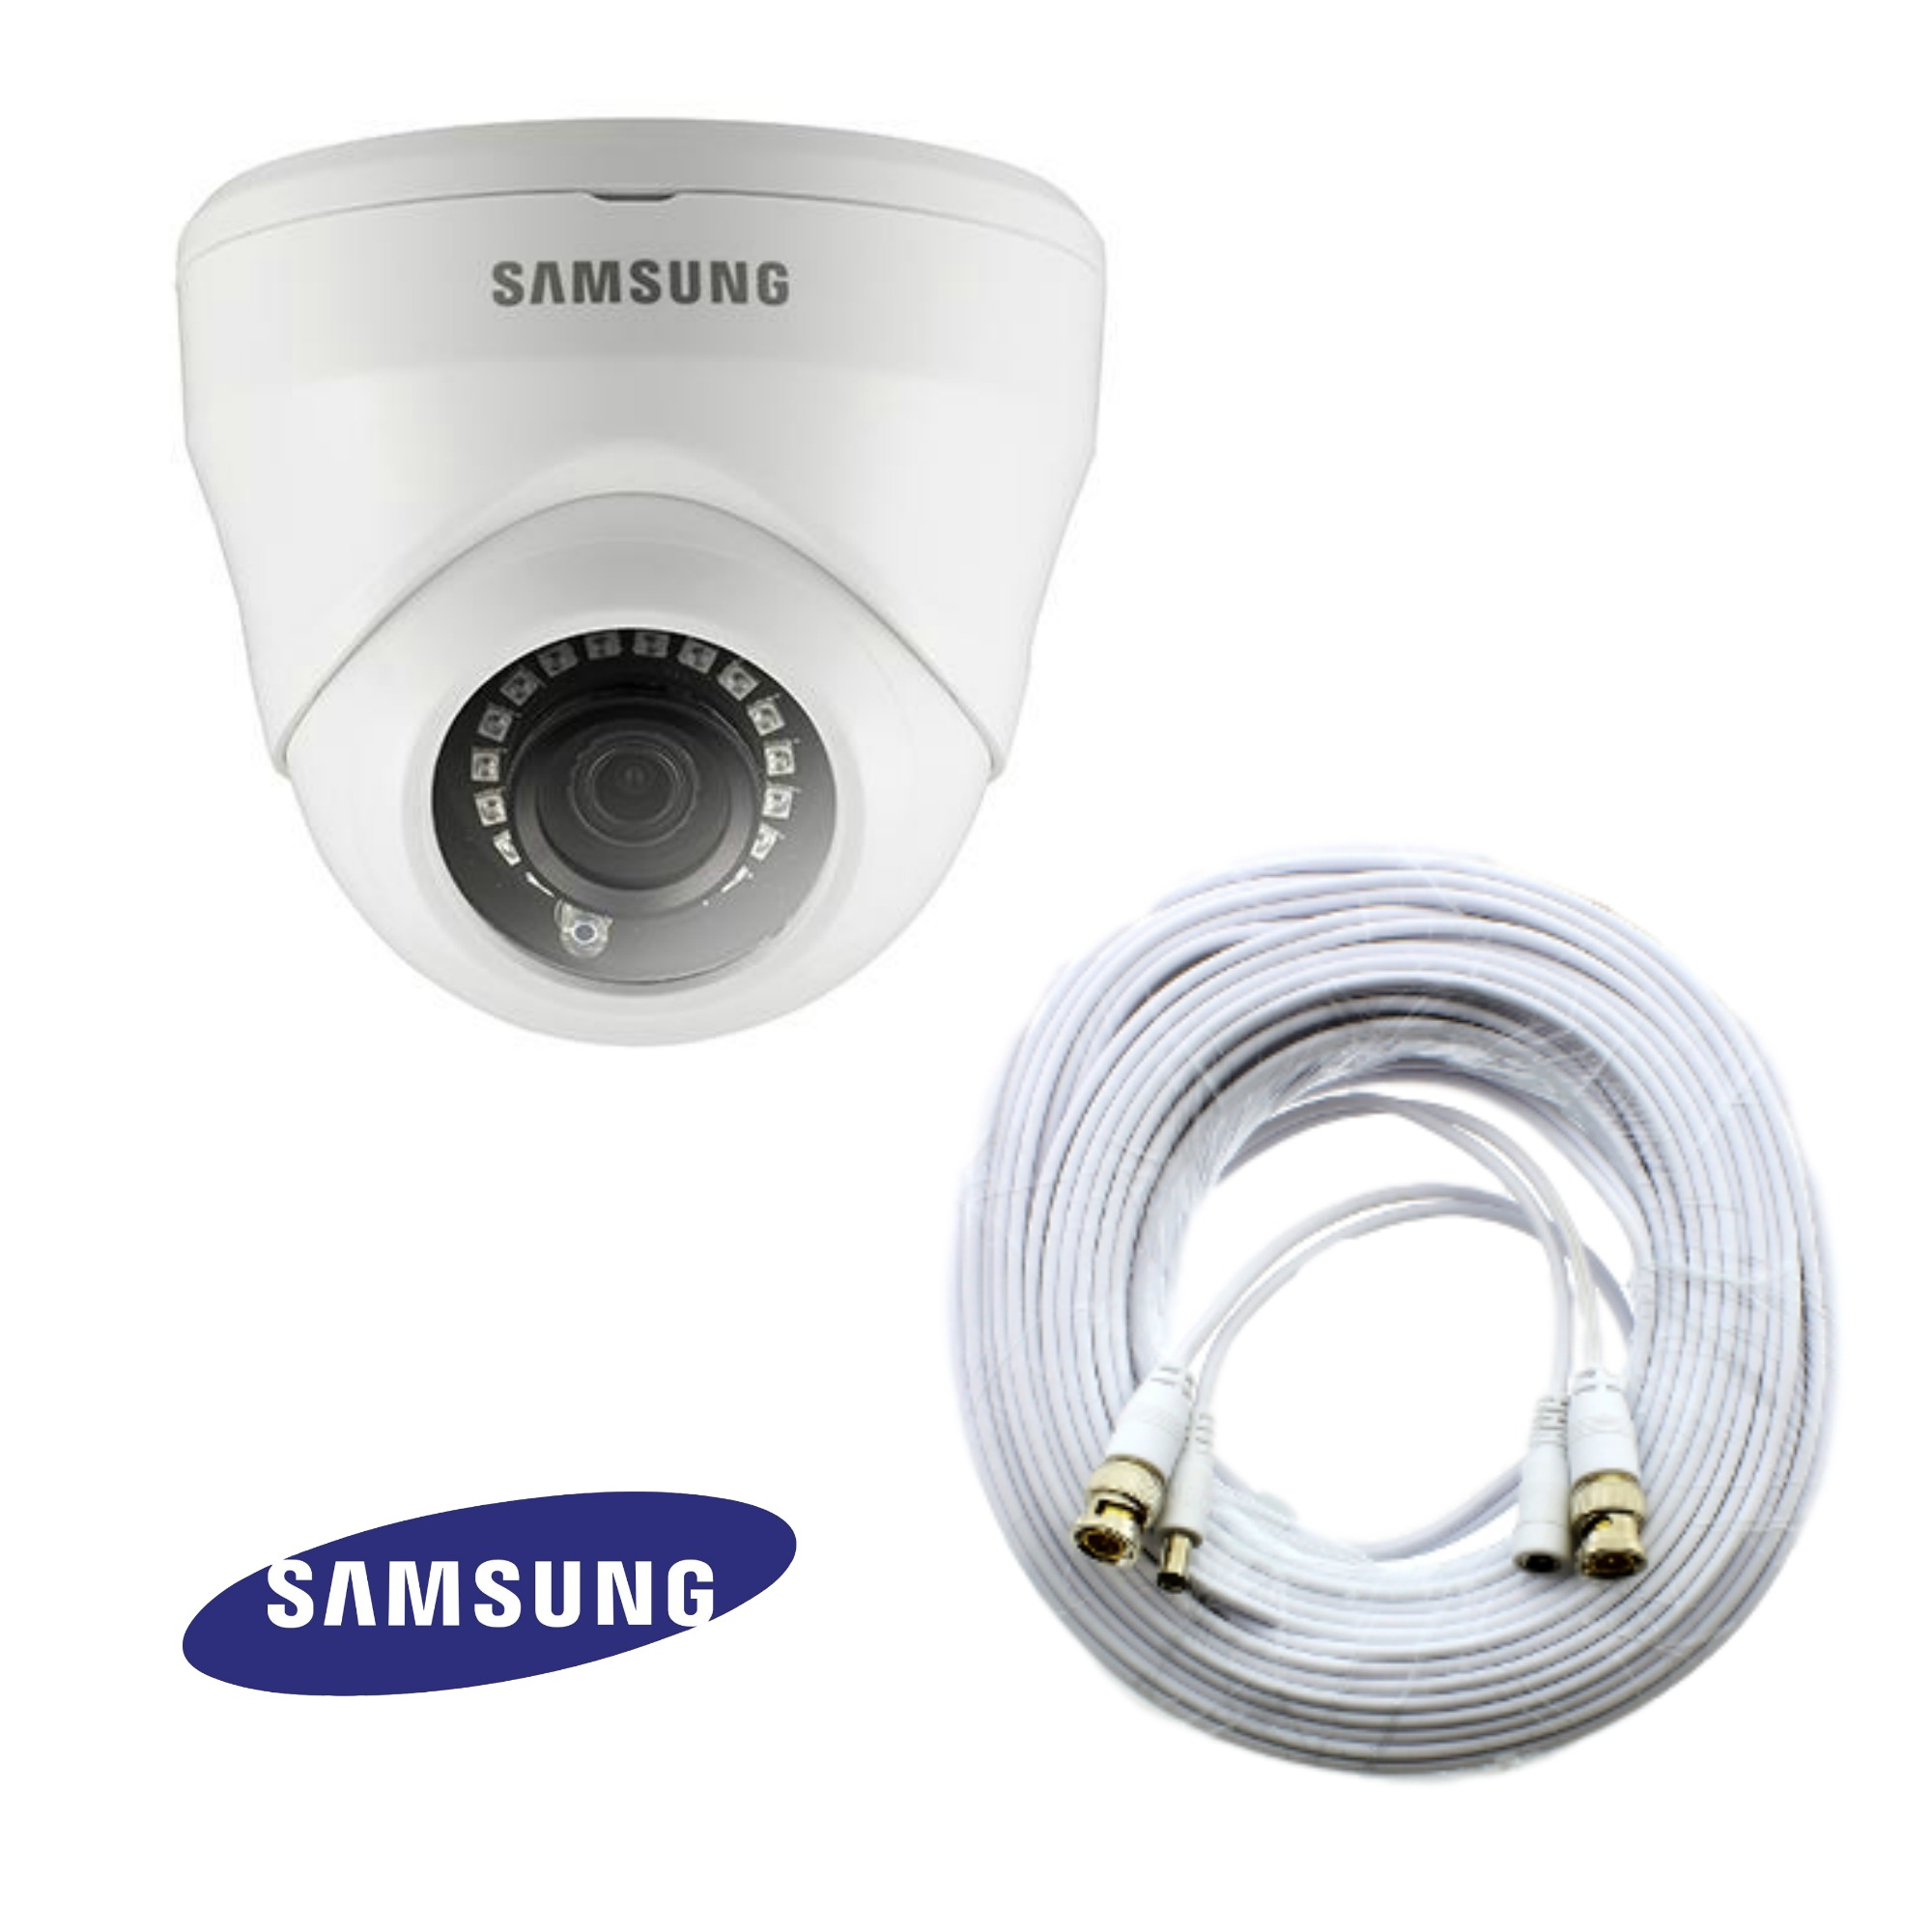 sdc 9443df samsung 2mp hd dome security camera kit. Black Bedroom Furniture Sets. Home Design Ideas